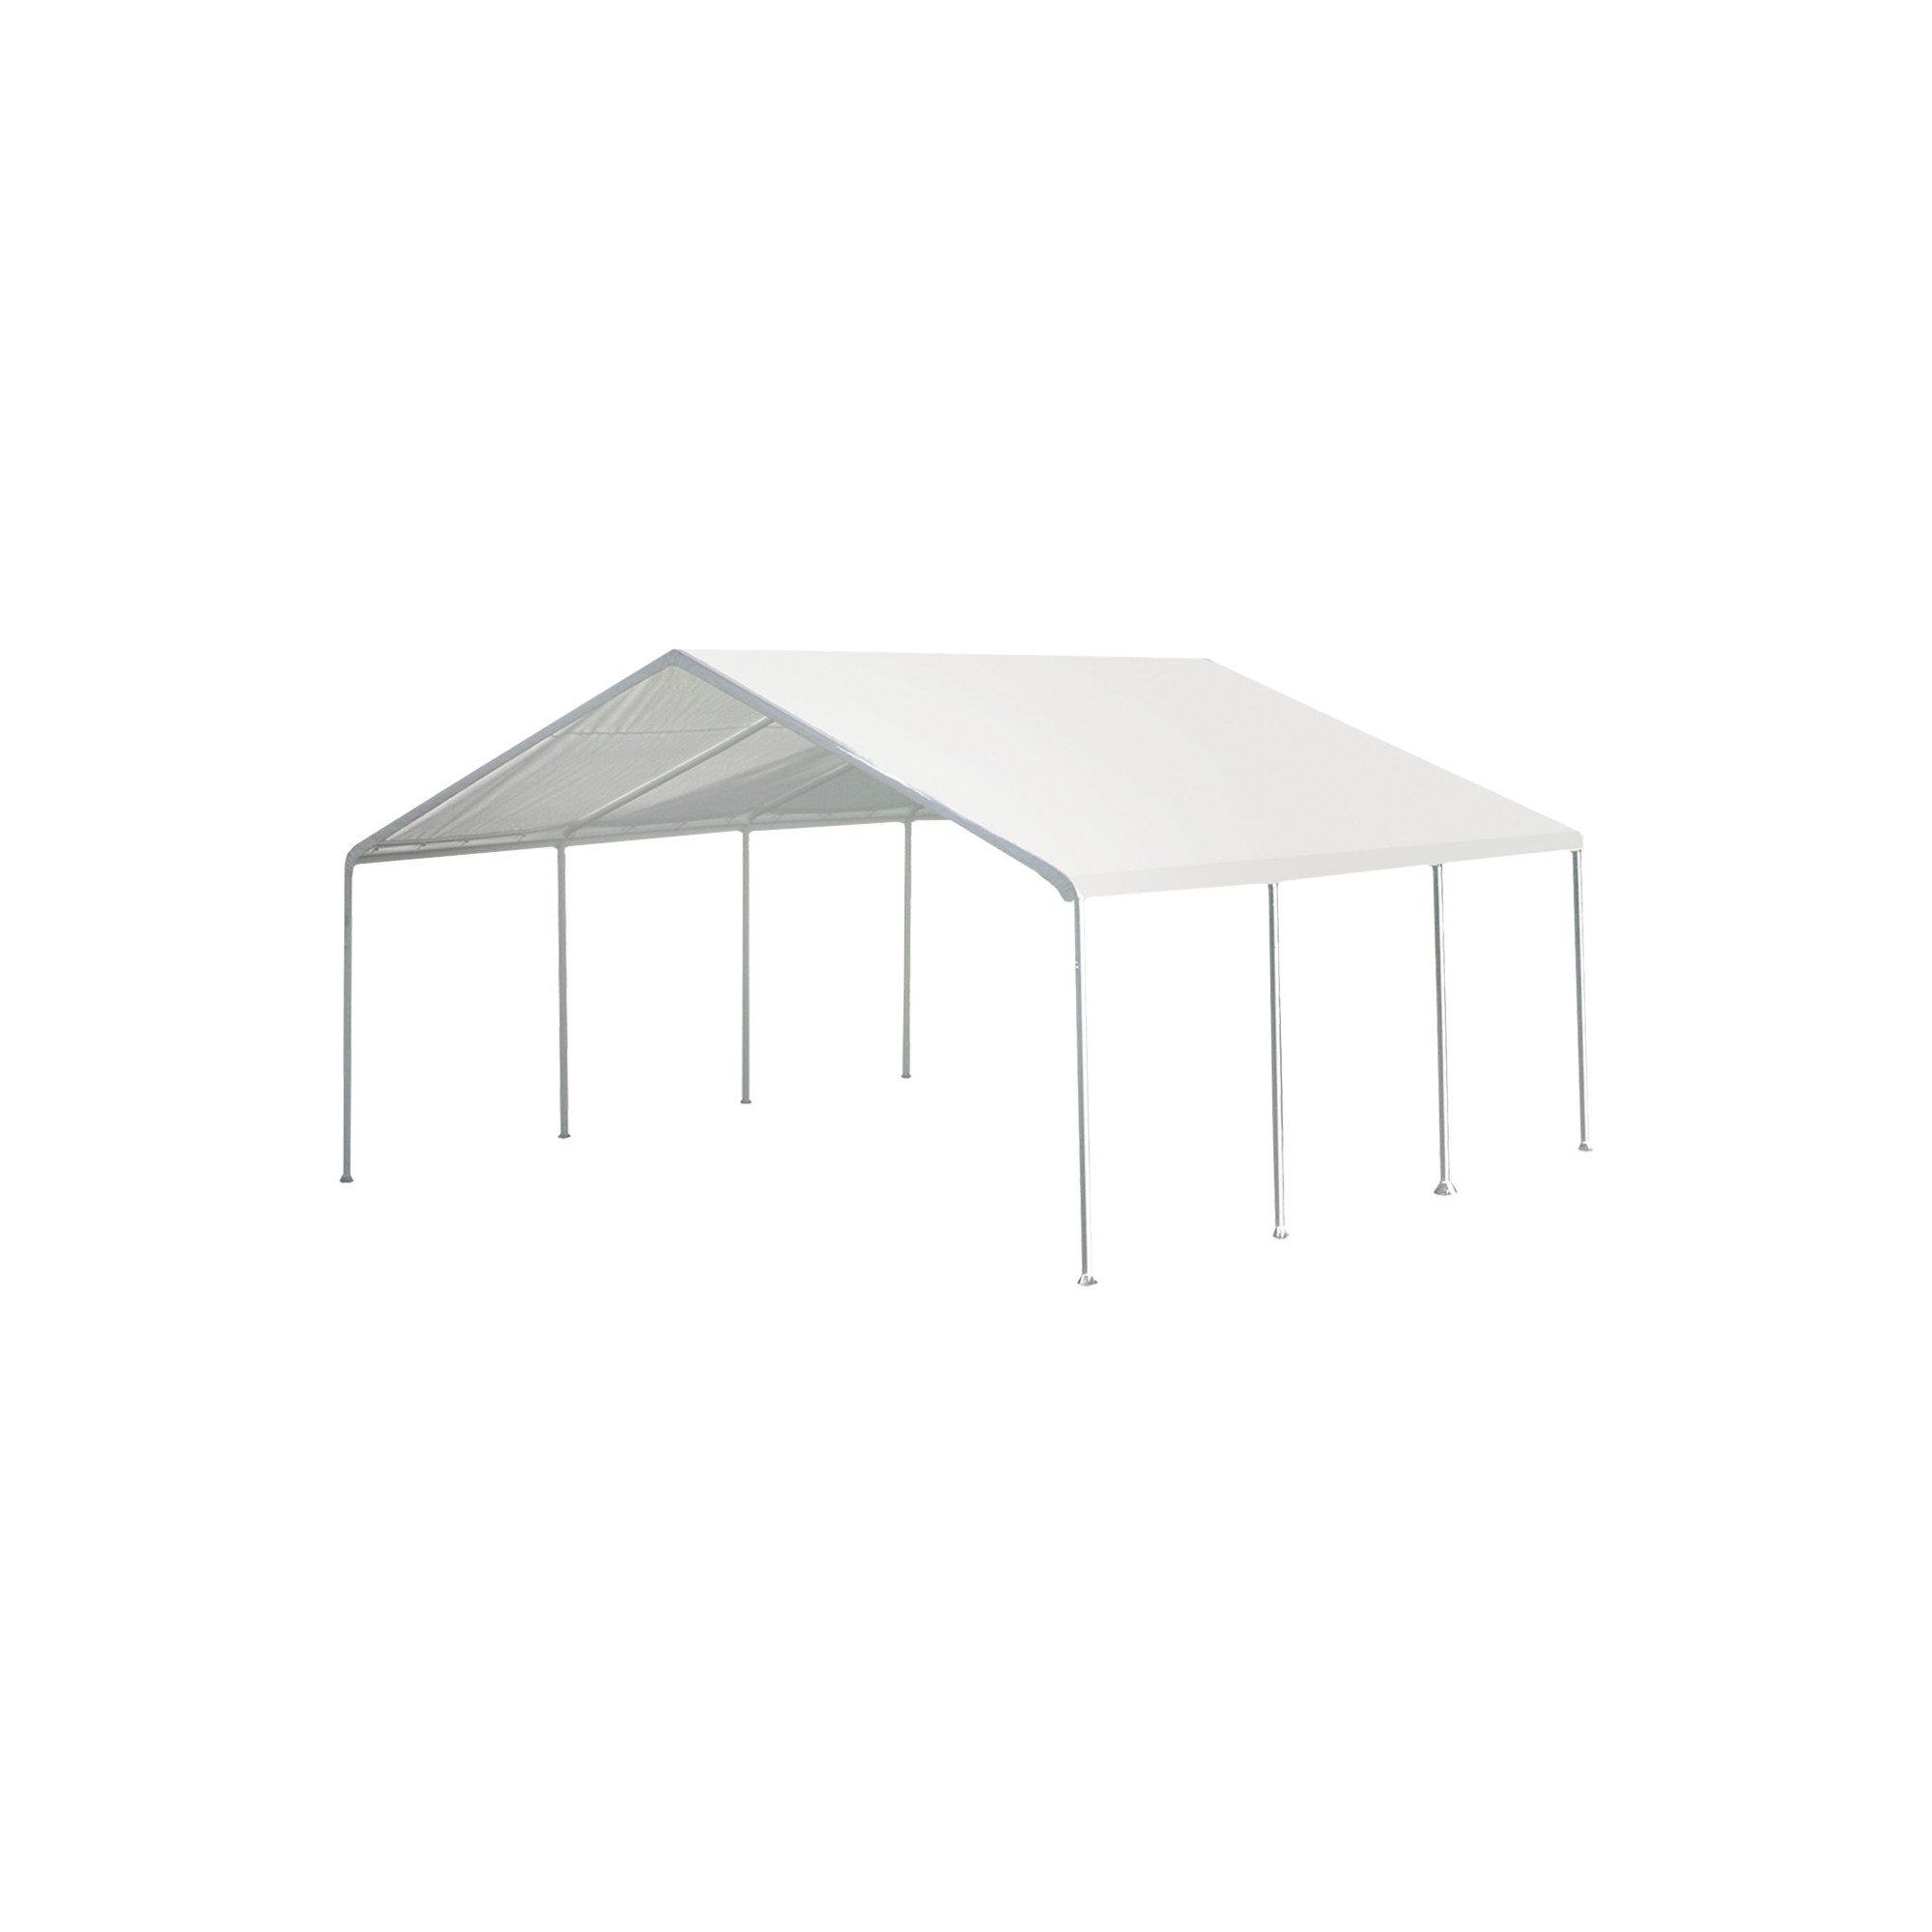 Super Max 18 X 20 Premium Canopy White Shelterlogic